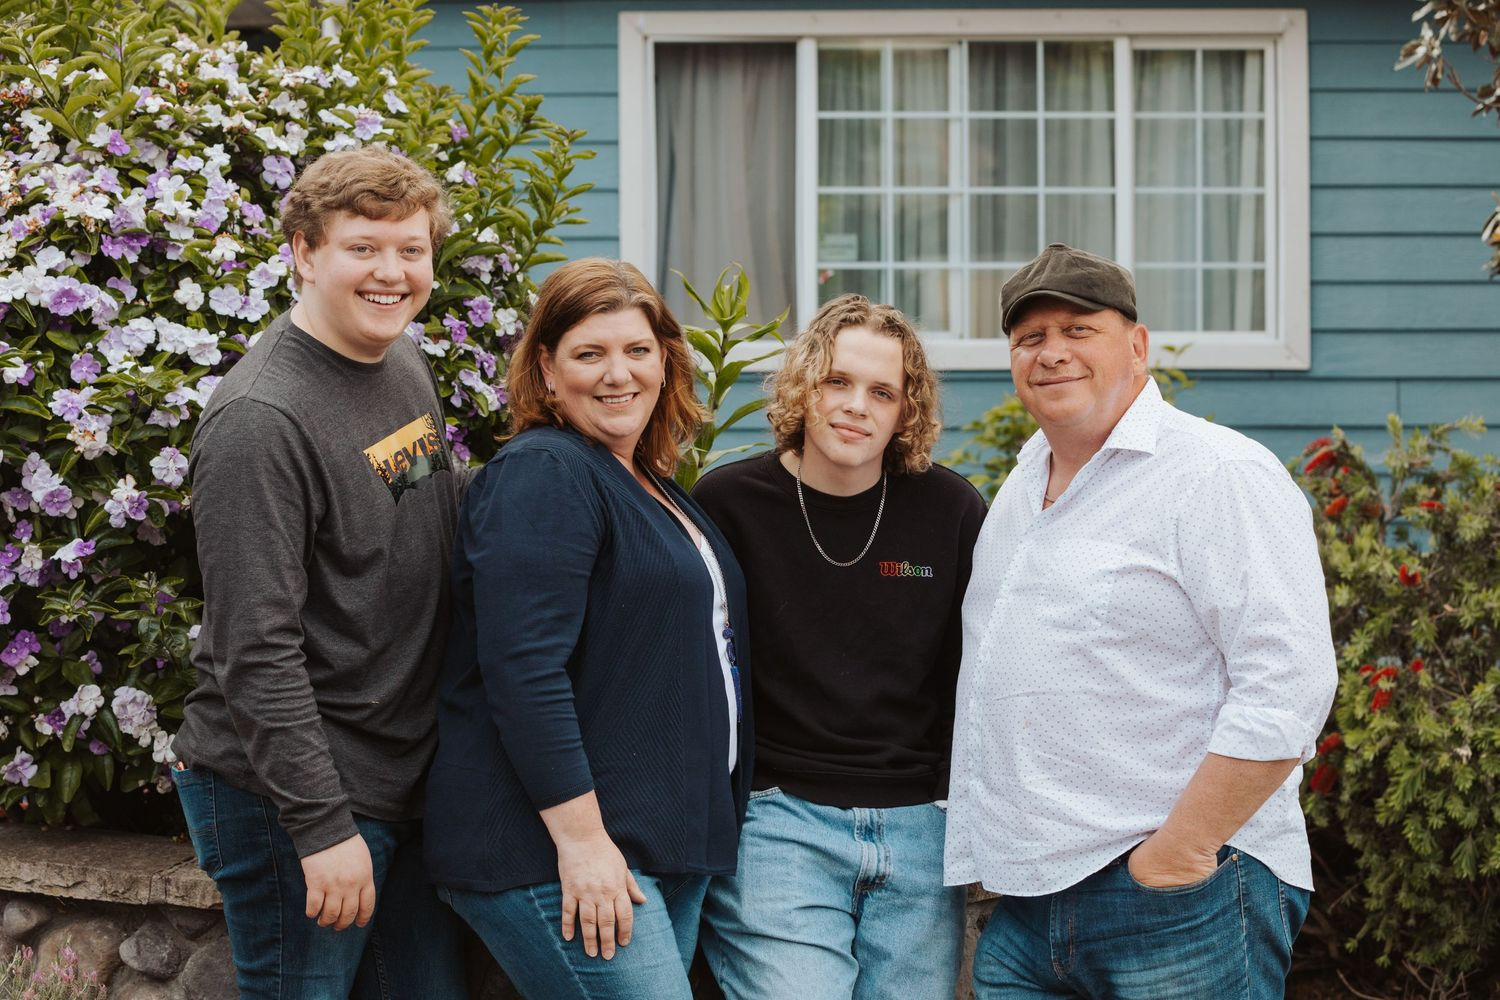 family photos maternity porchtraits portraits porch photos love bay area benicia downtown photographer